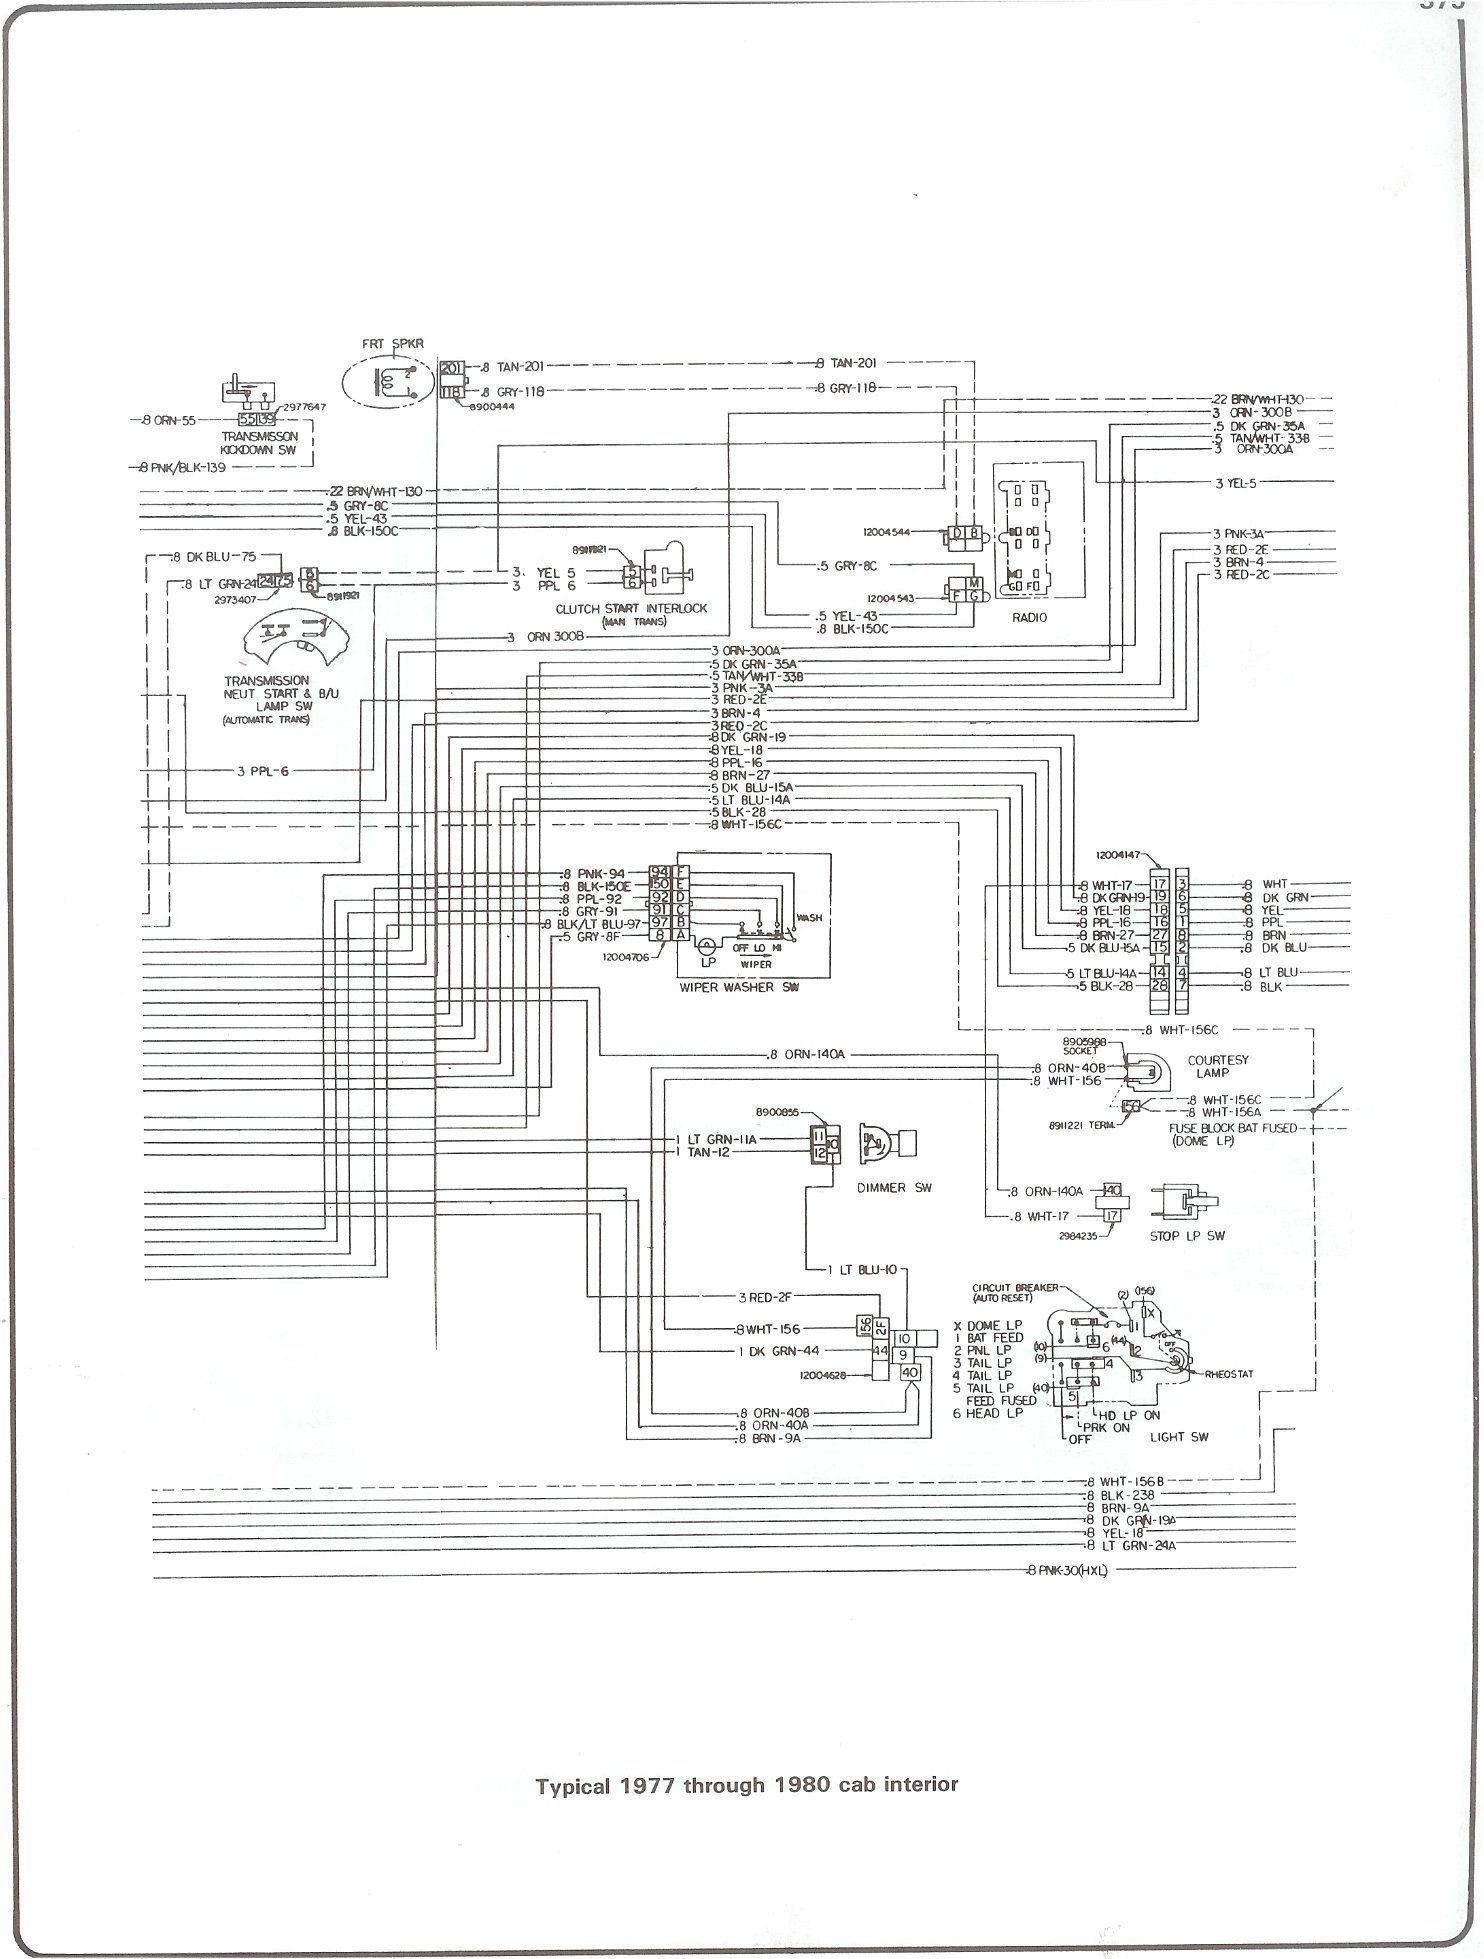 1975 chevy c20 wiring diagram house wiring diagram symbols u2022 rh maxturner co 66 Nova Wiring Diagram 1974 Nova Wiring Diagram